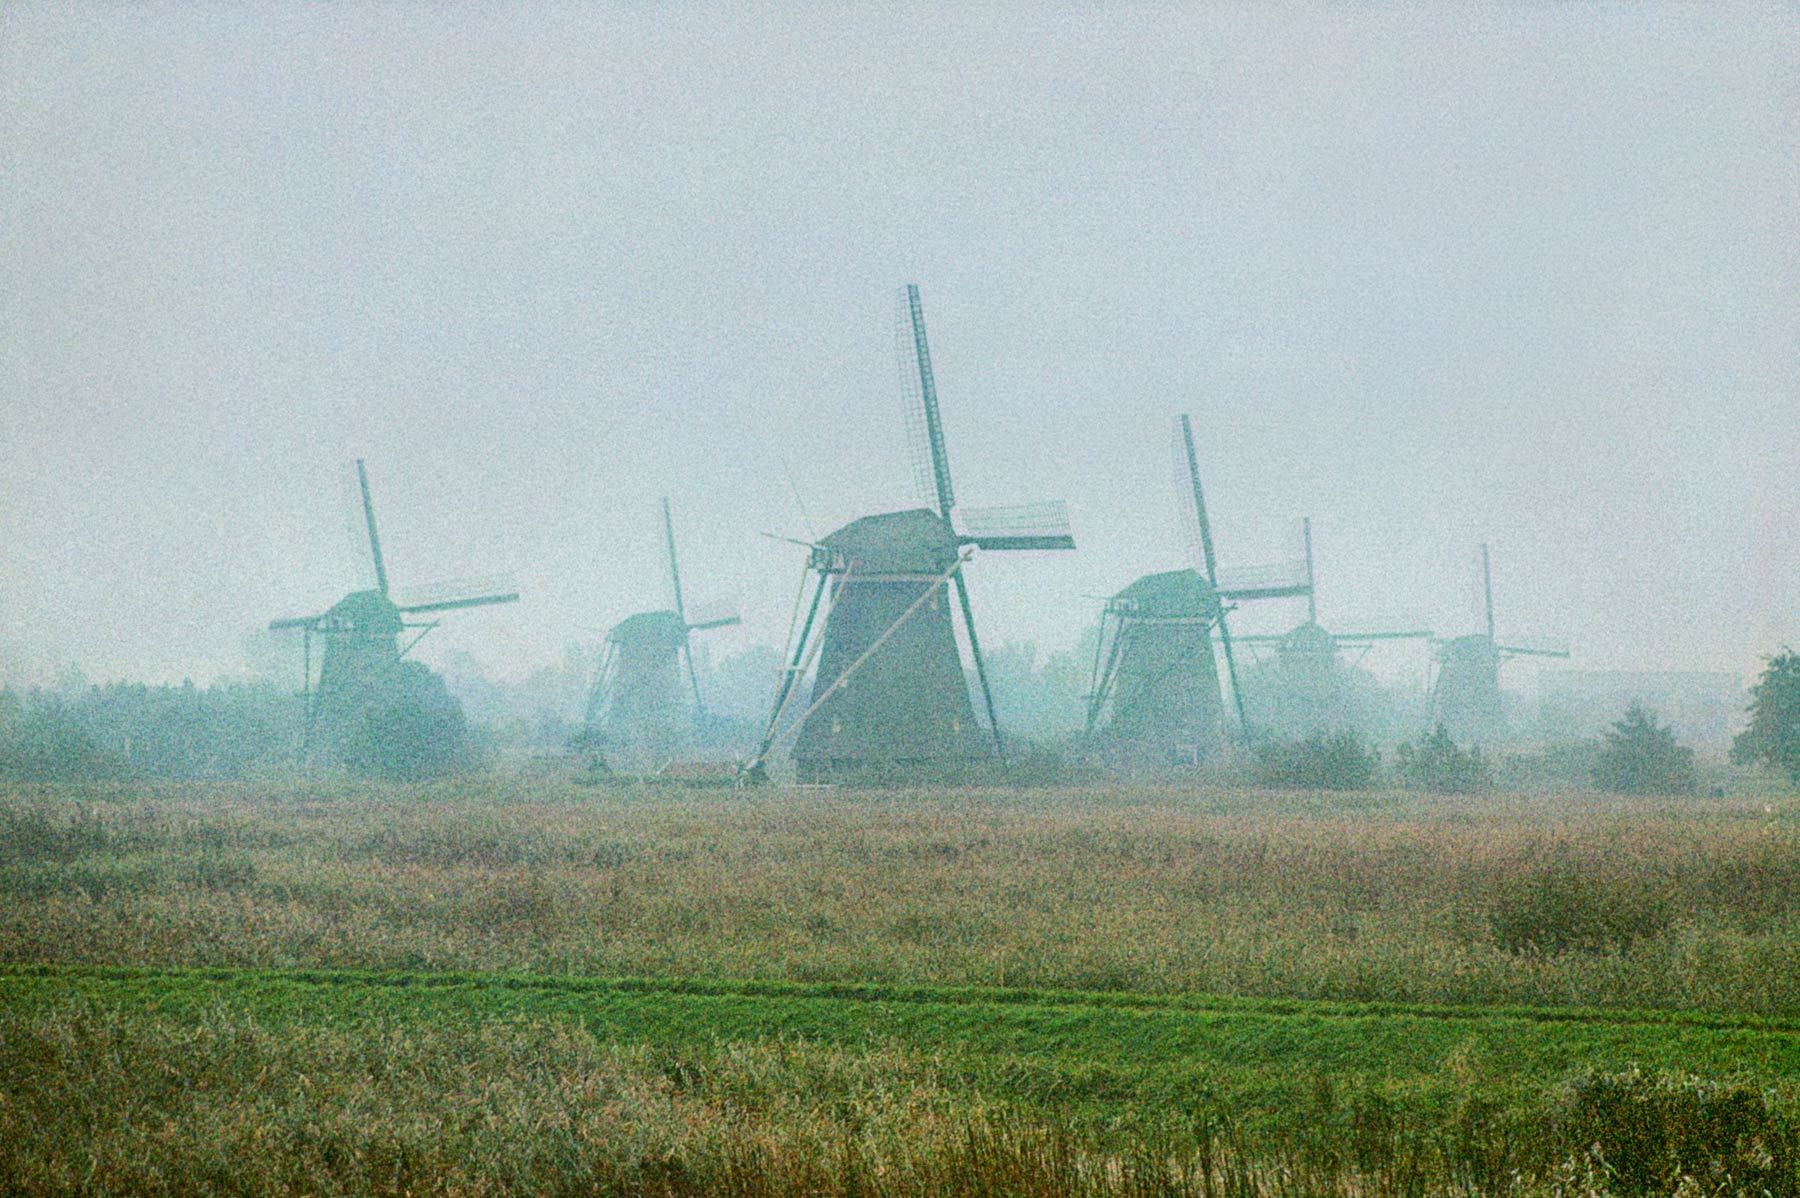 Windmills in Fog, the Netherlands